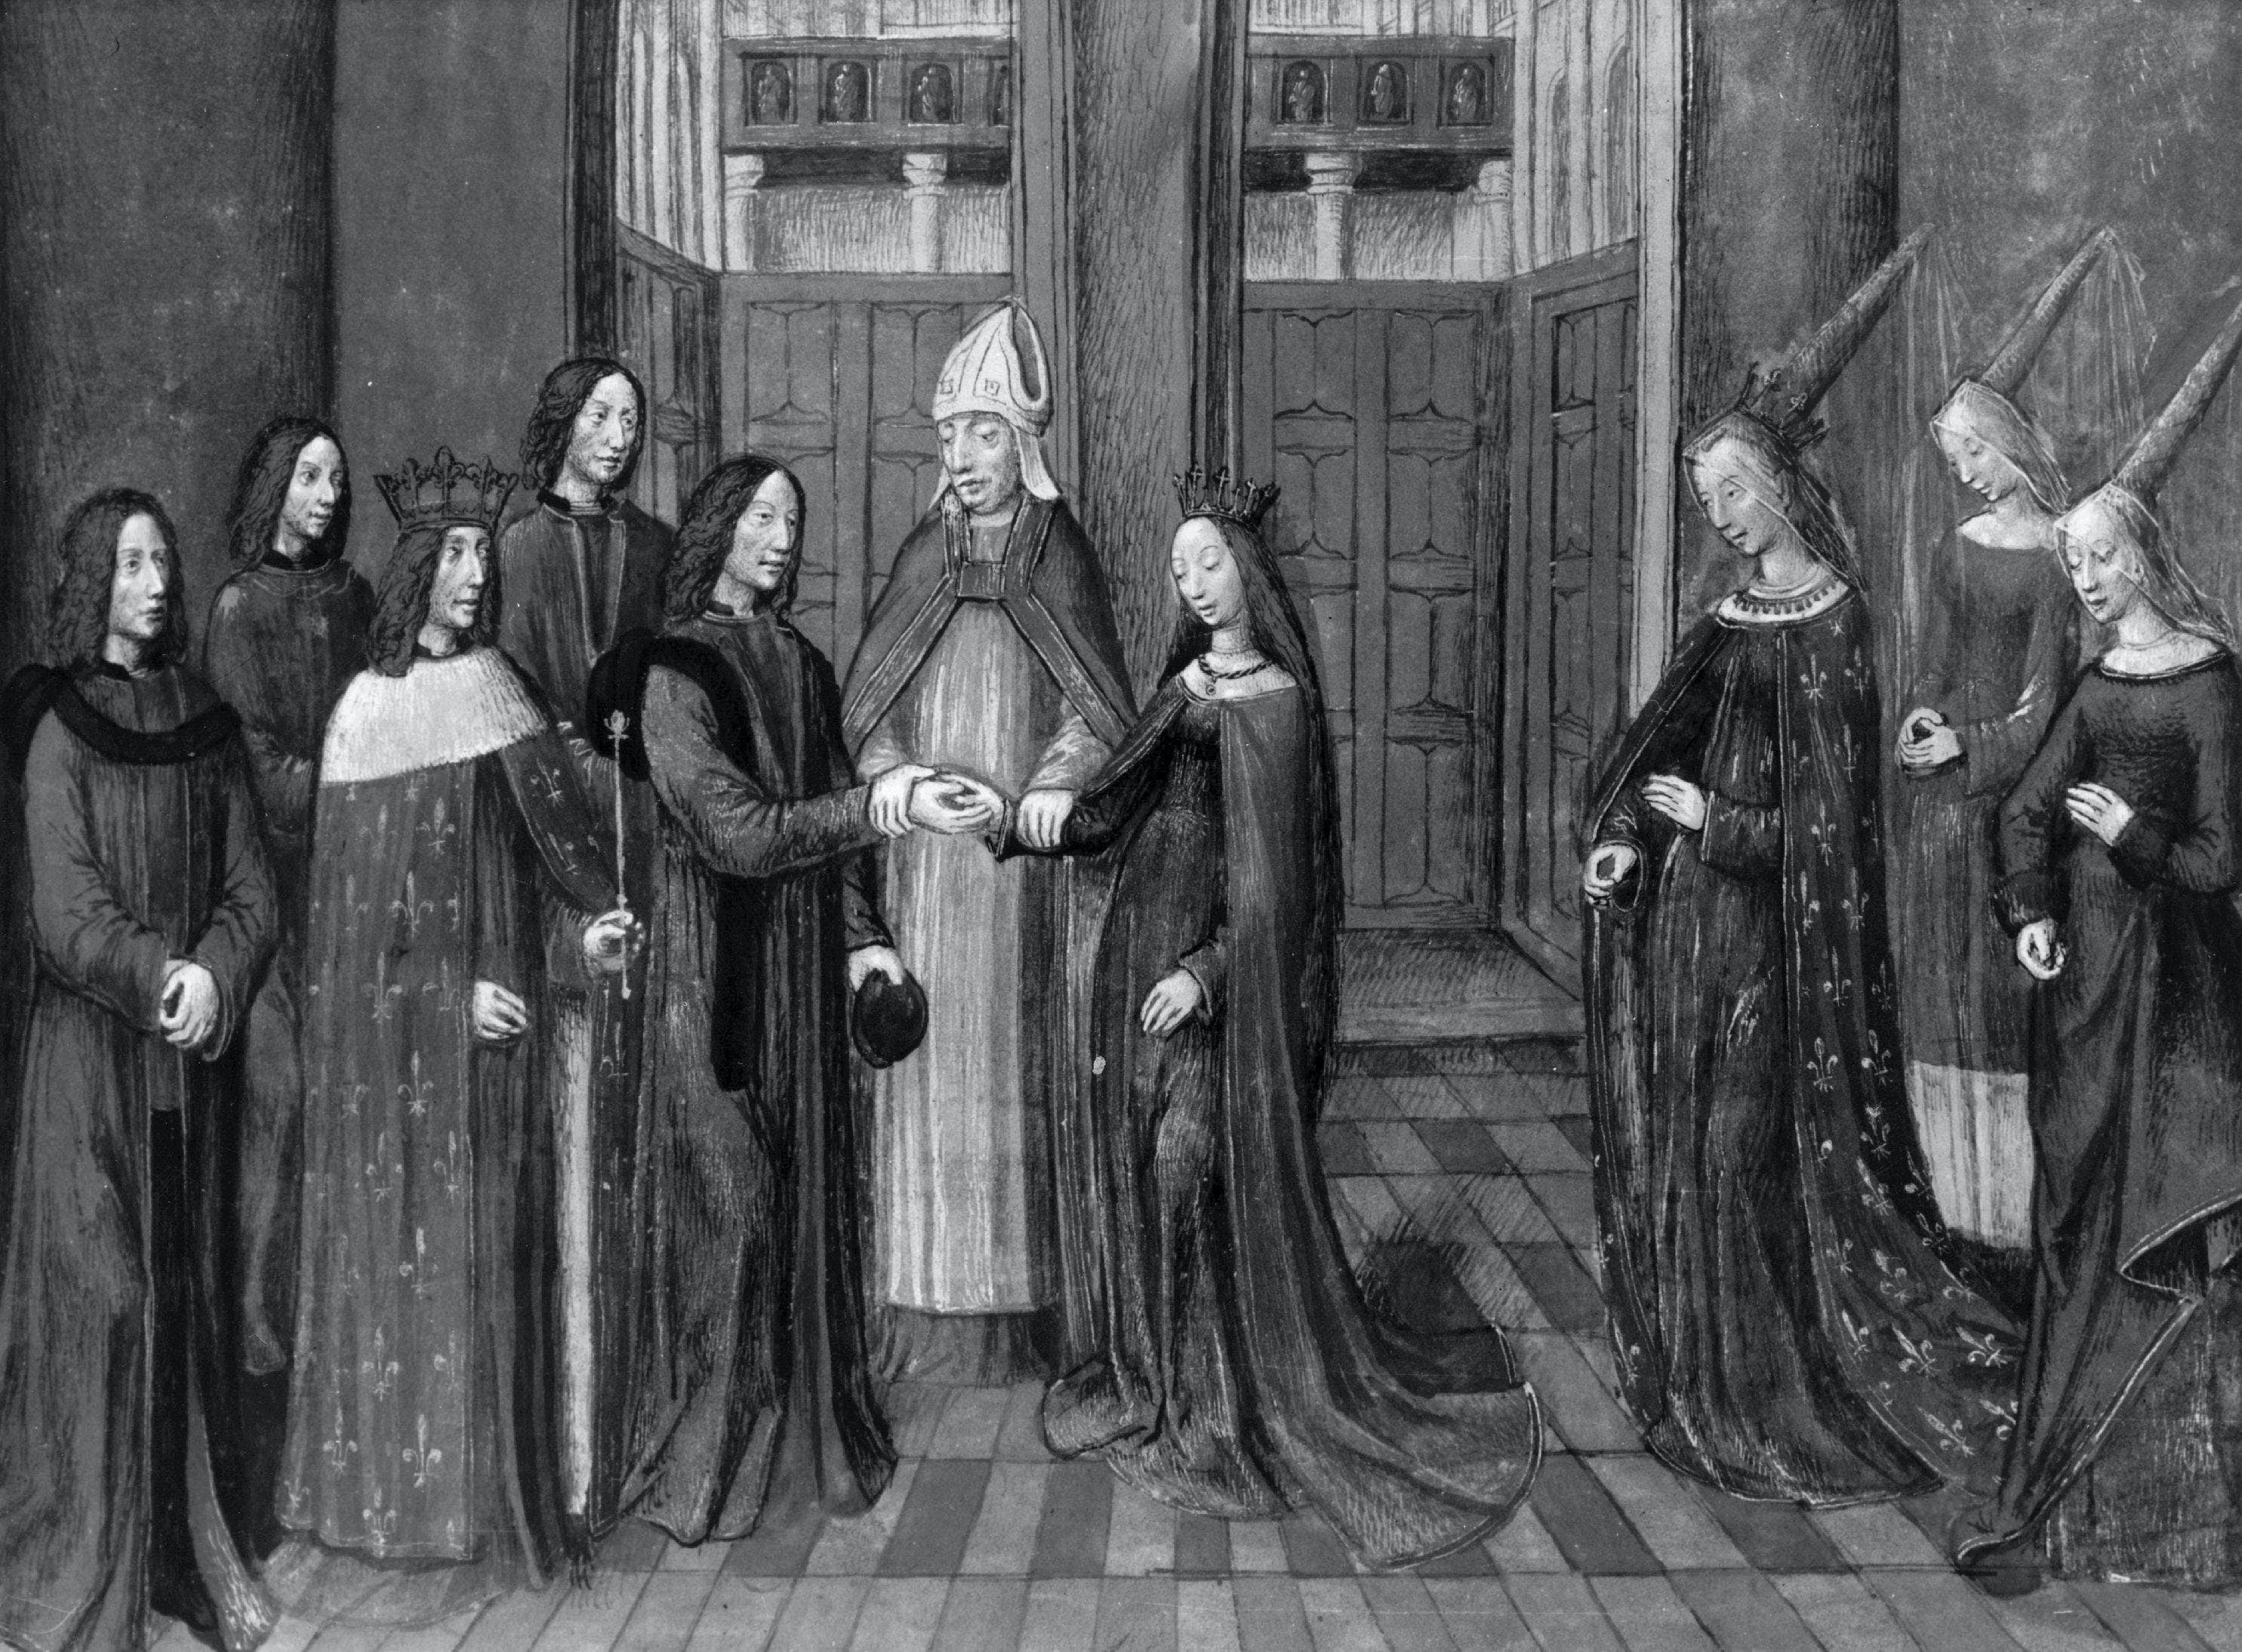 In Medieval Times, marriages were often arranged